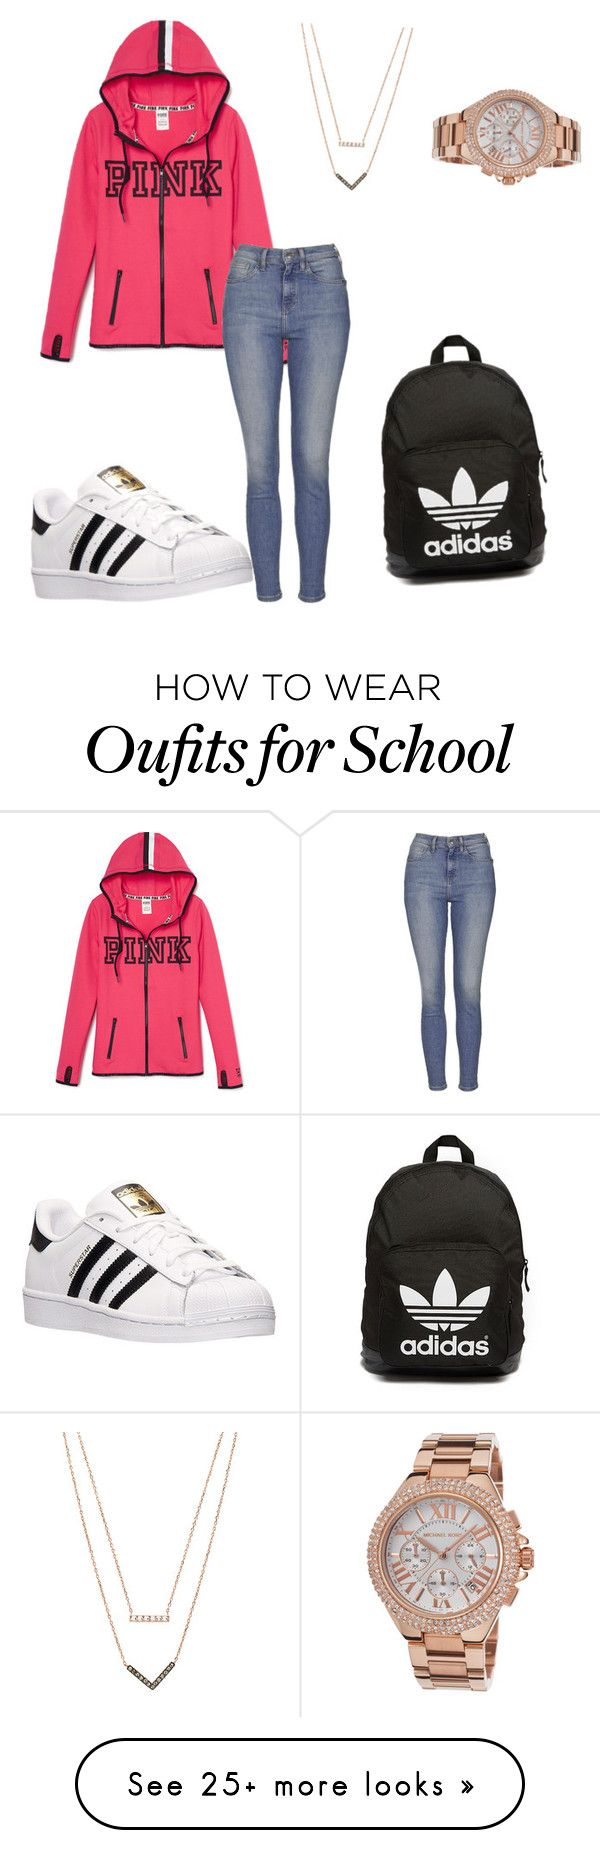 """School"" by emmaleeb-i on Polyvore featuring Topshop, adidas, adidas Originals, Michael Kors, women's clothing, women's fashion, women, female, woman and misses"